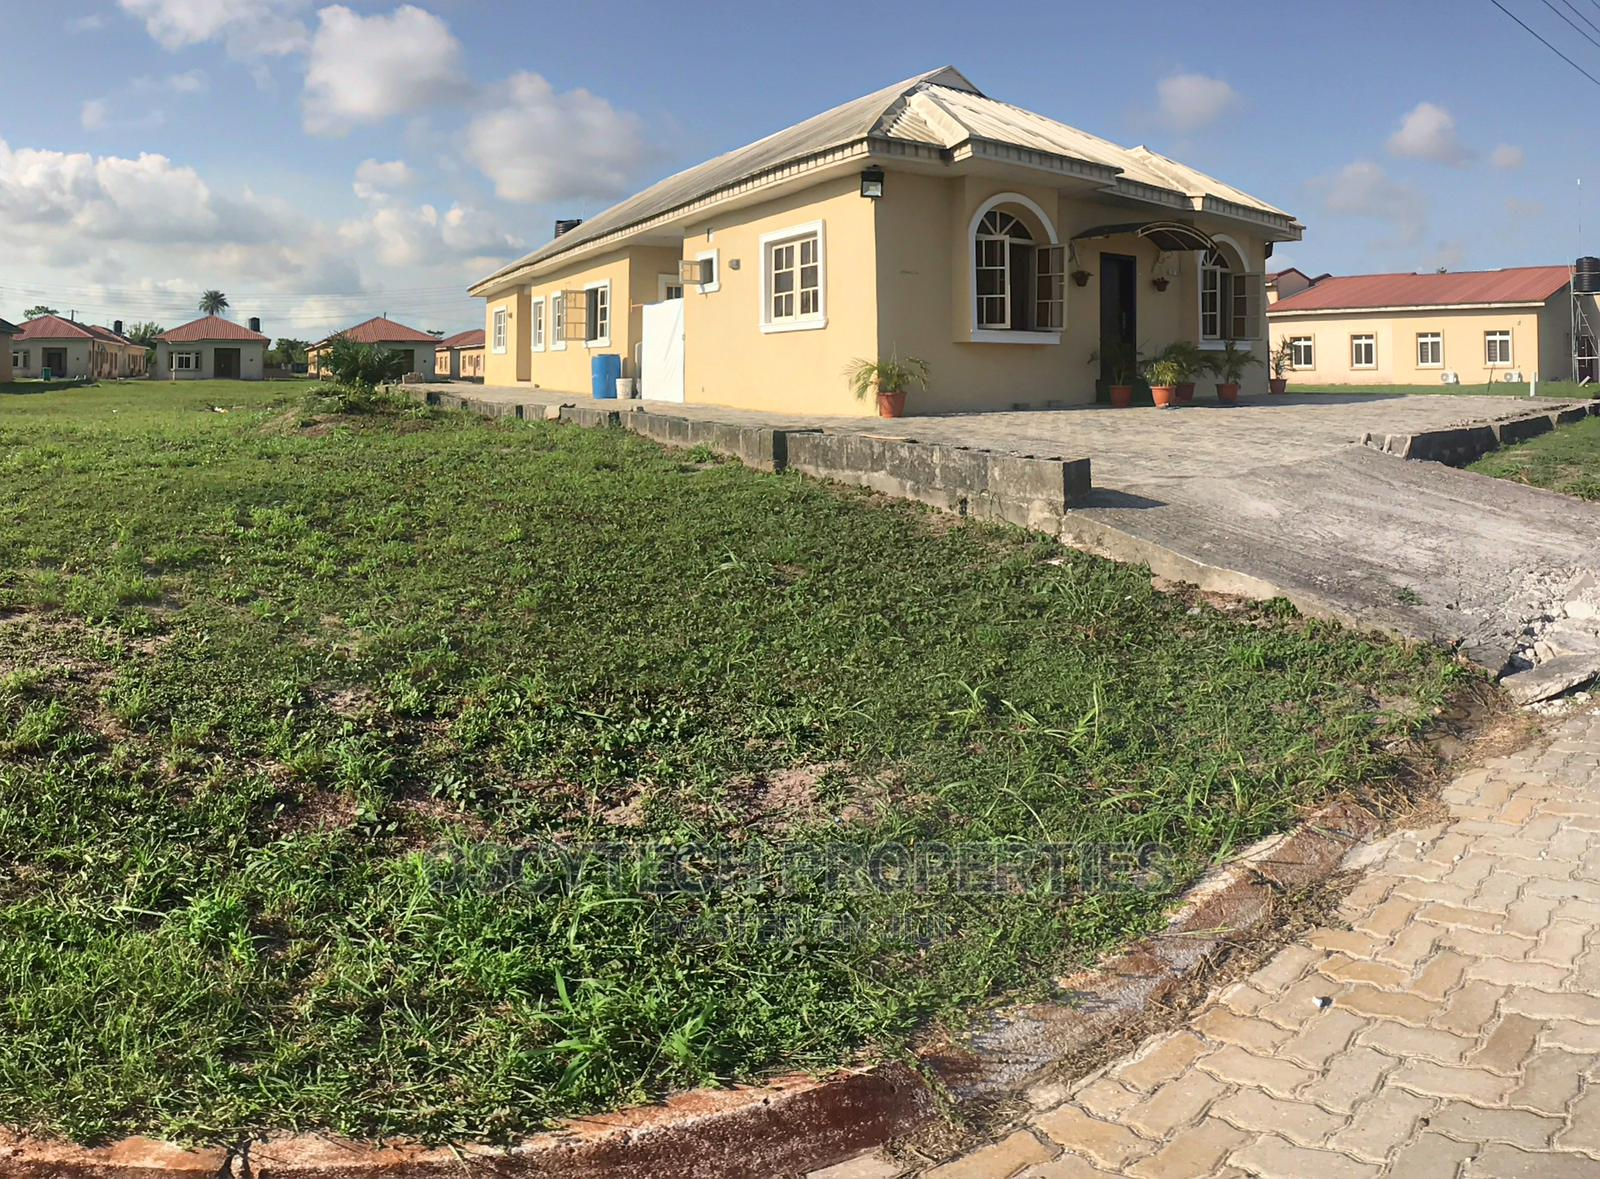 2 Bedrooms Bungalow for Rent in Adiva Estate In, Ibeju | Houses & Apartments For Rent for sale in Ibeju, Lagos State, Nigeria